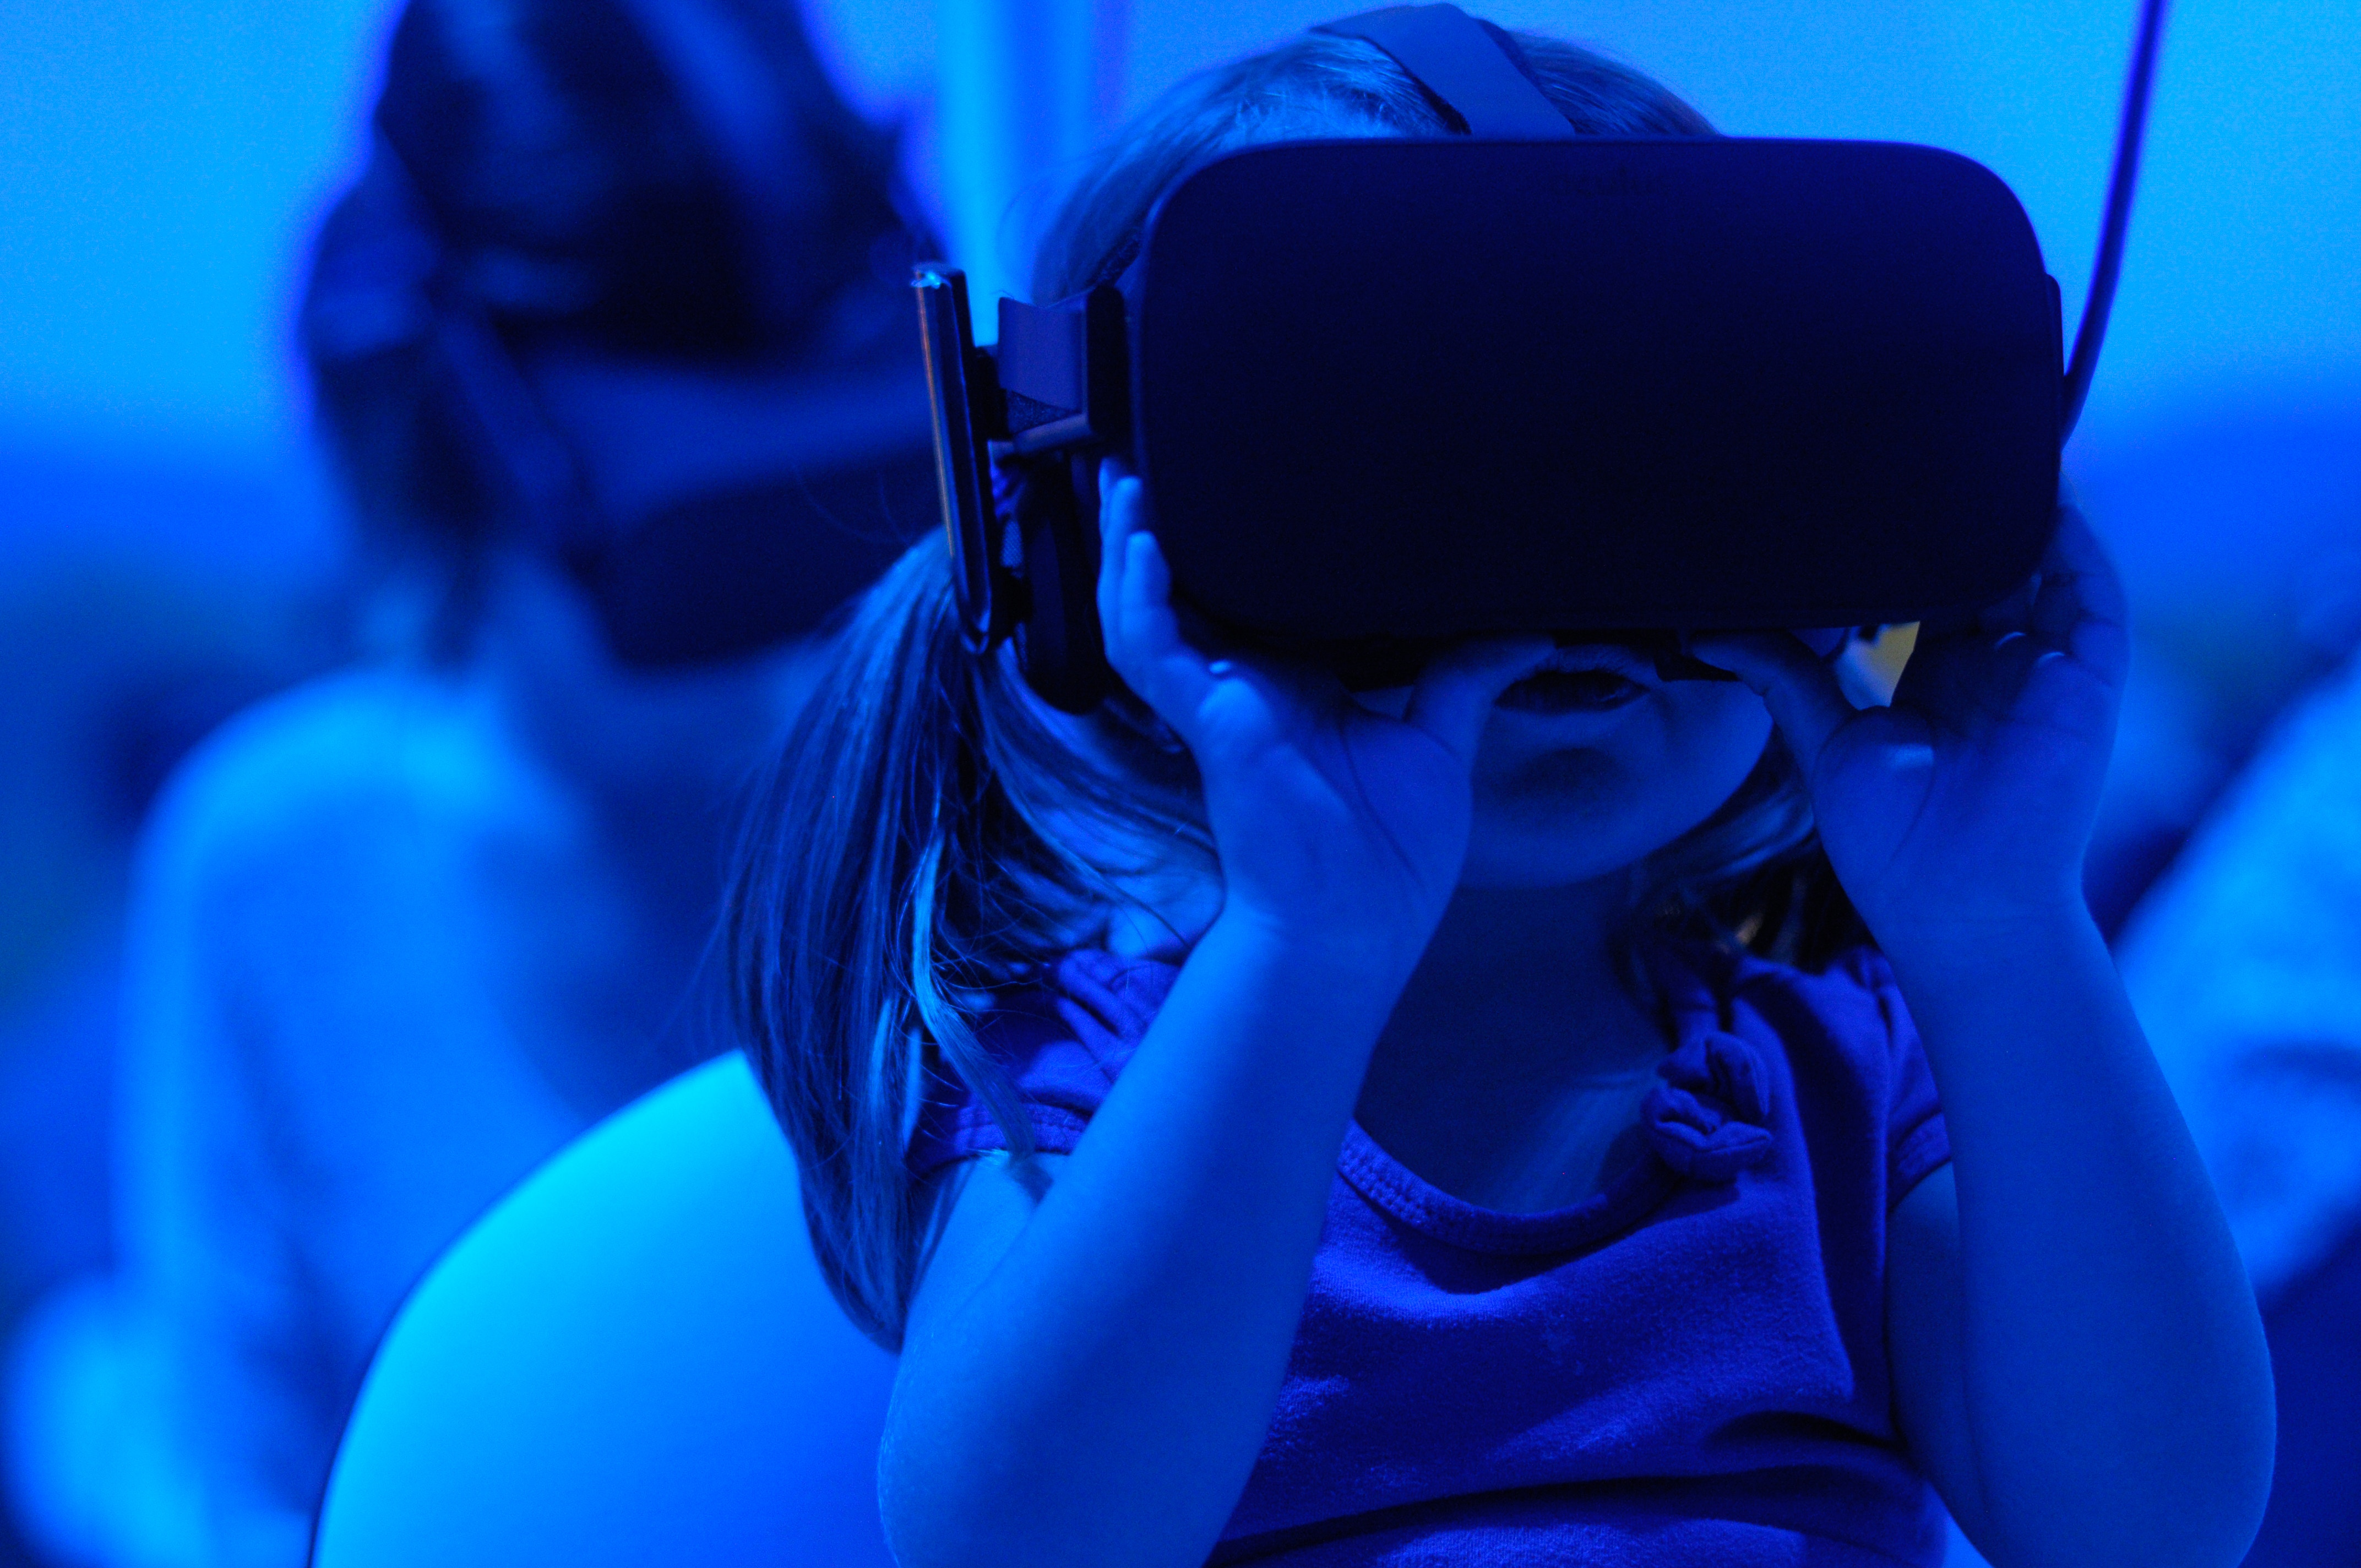 Young girl using tech which is an augmented reality device